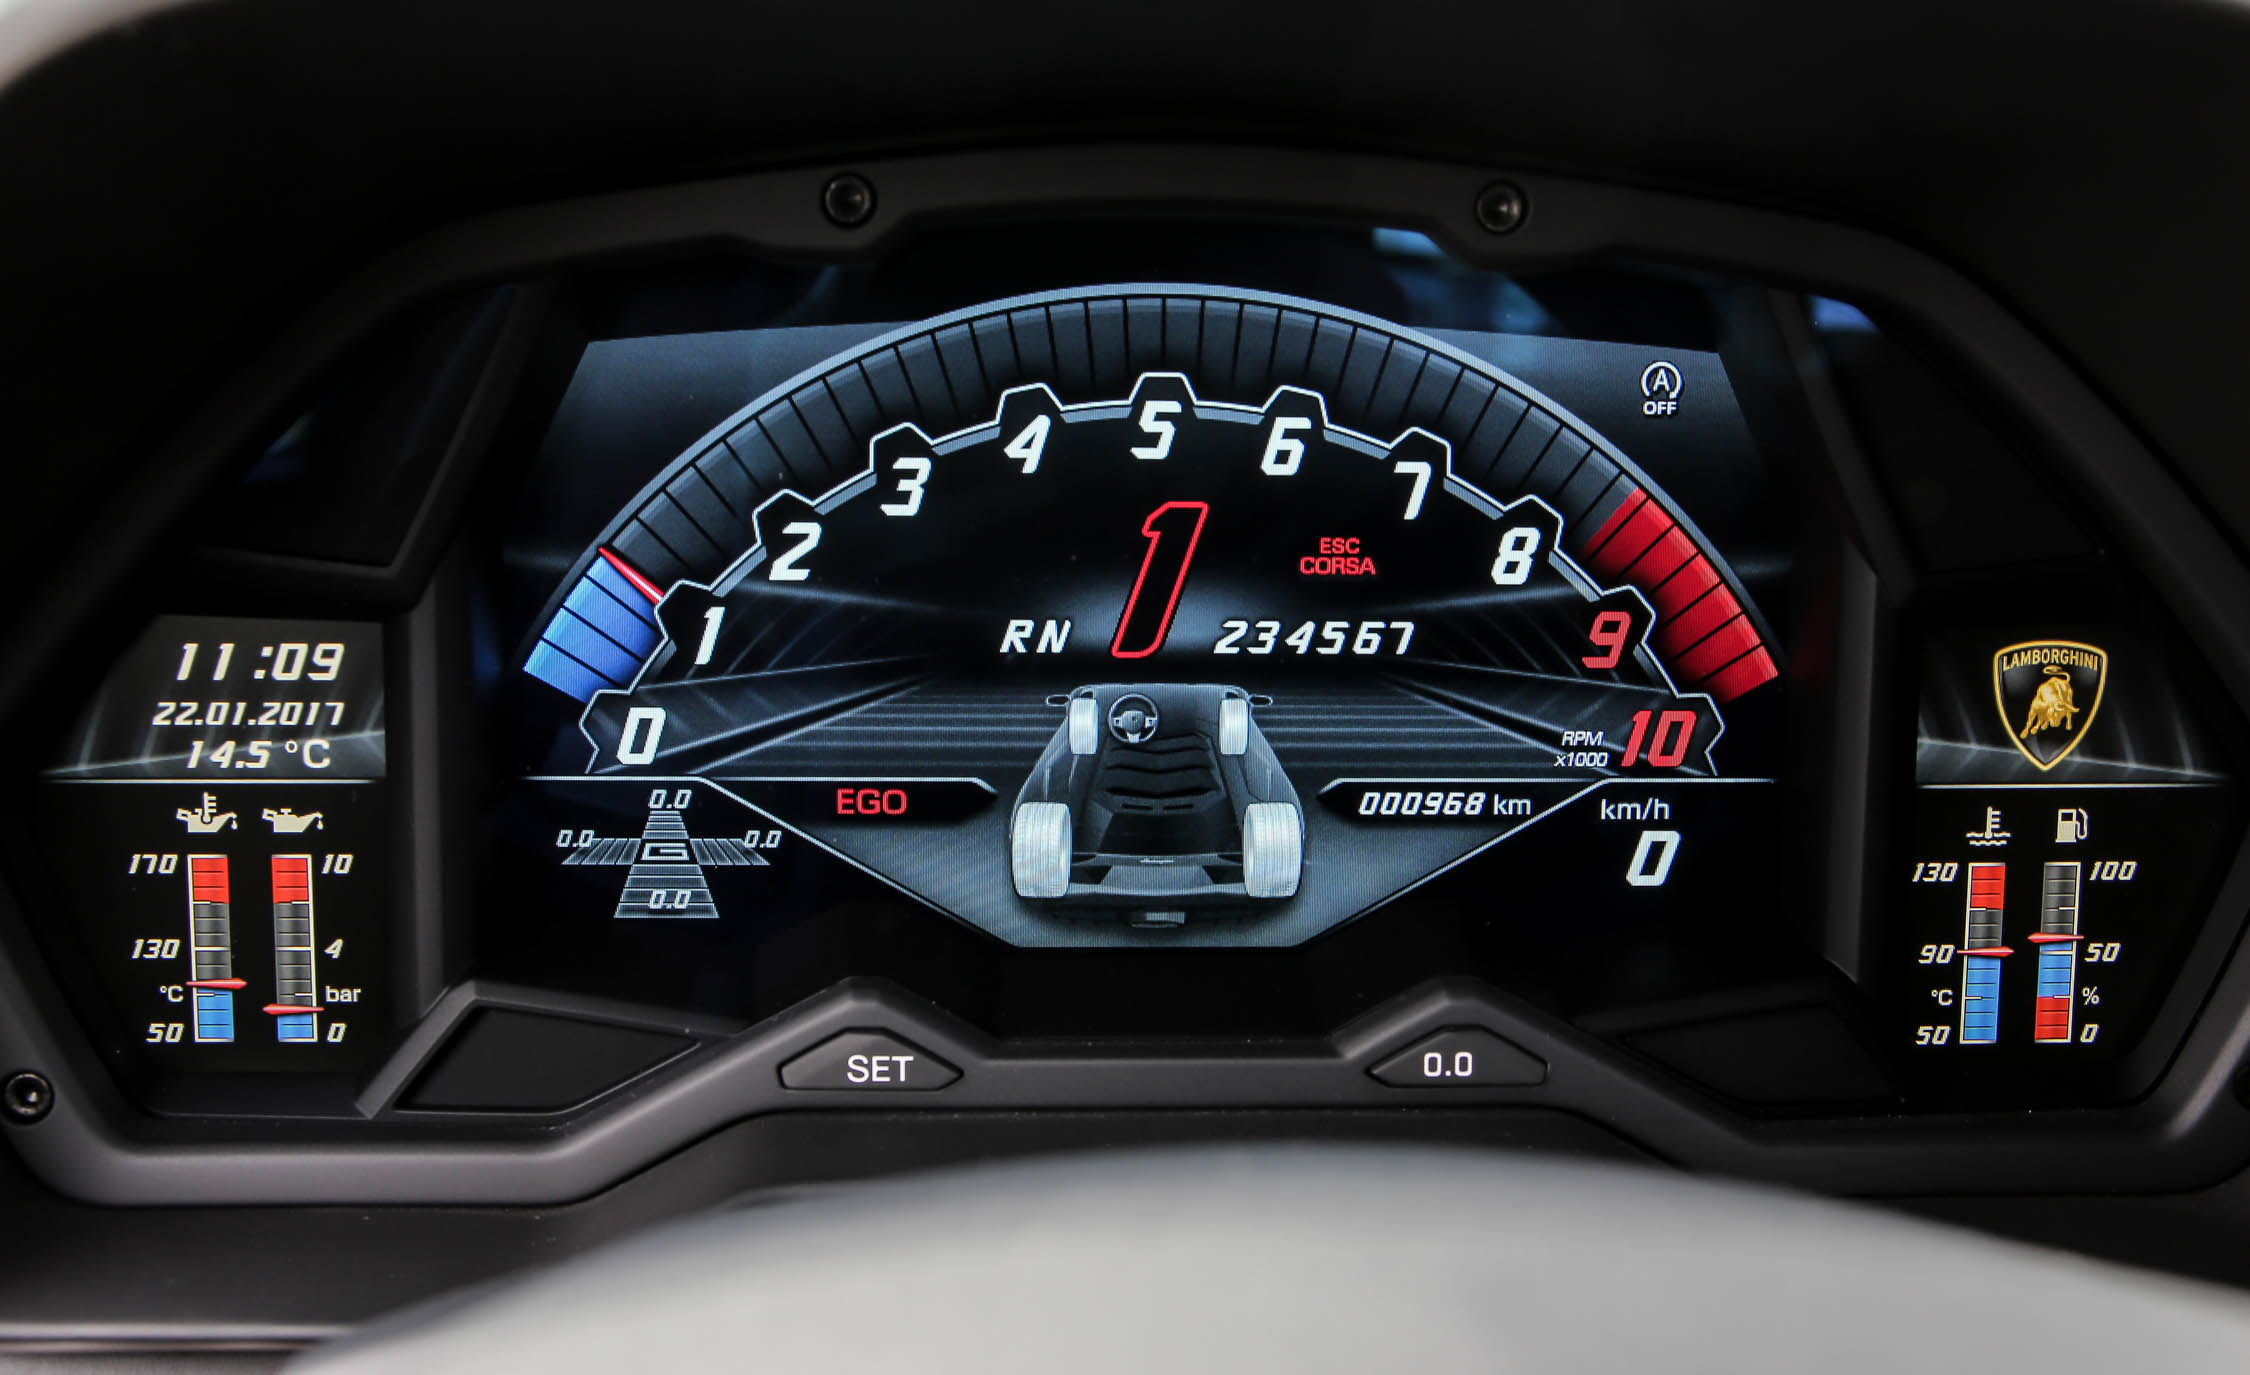 2017 Lamborghini Aventador S Interior View Speedometer Instrument Cluster (Photo 15 of 20)